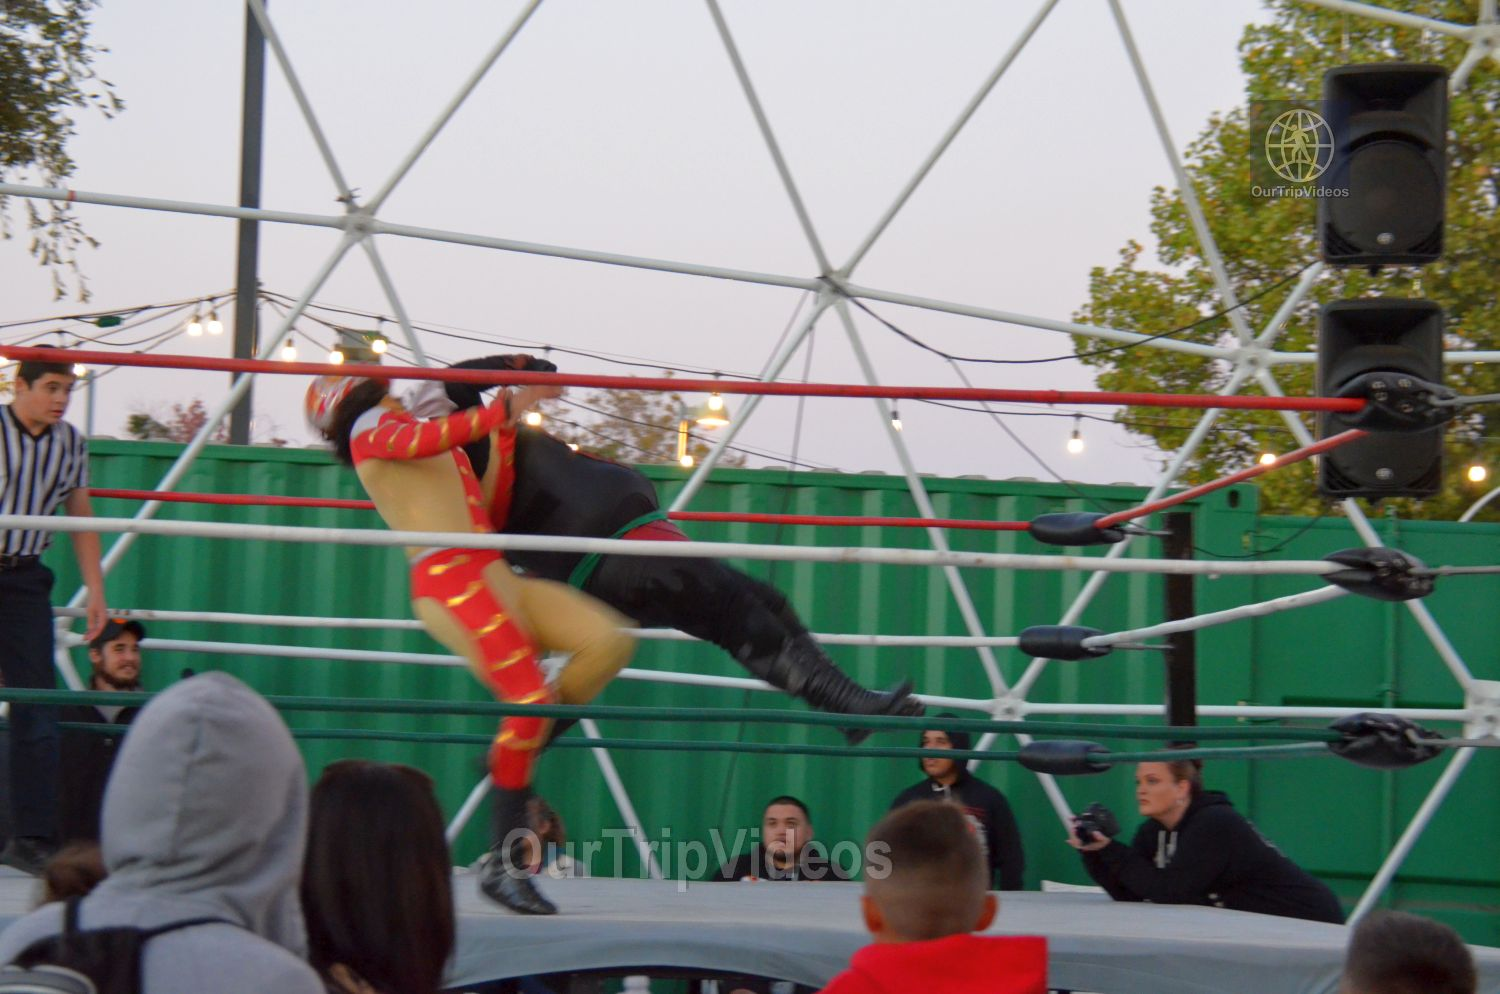 Throwdown at the Thunderdome (Luchador Wrestling), Fremont, CA, USA - Picture 11 of 25